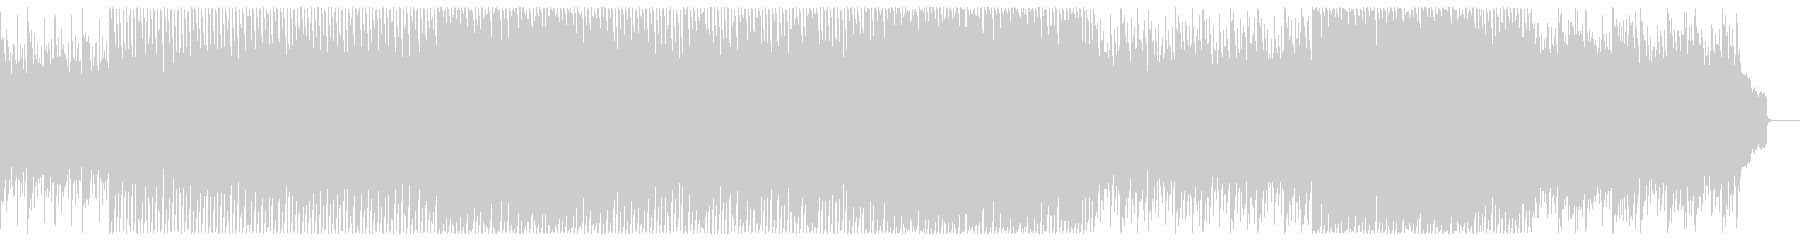 Clear, glittering and moving emo piano EDM's unreproduced waveform